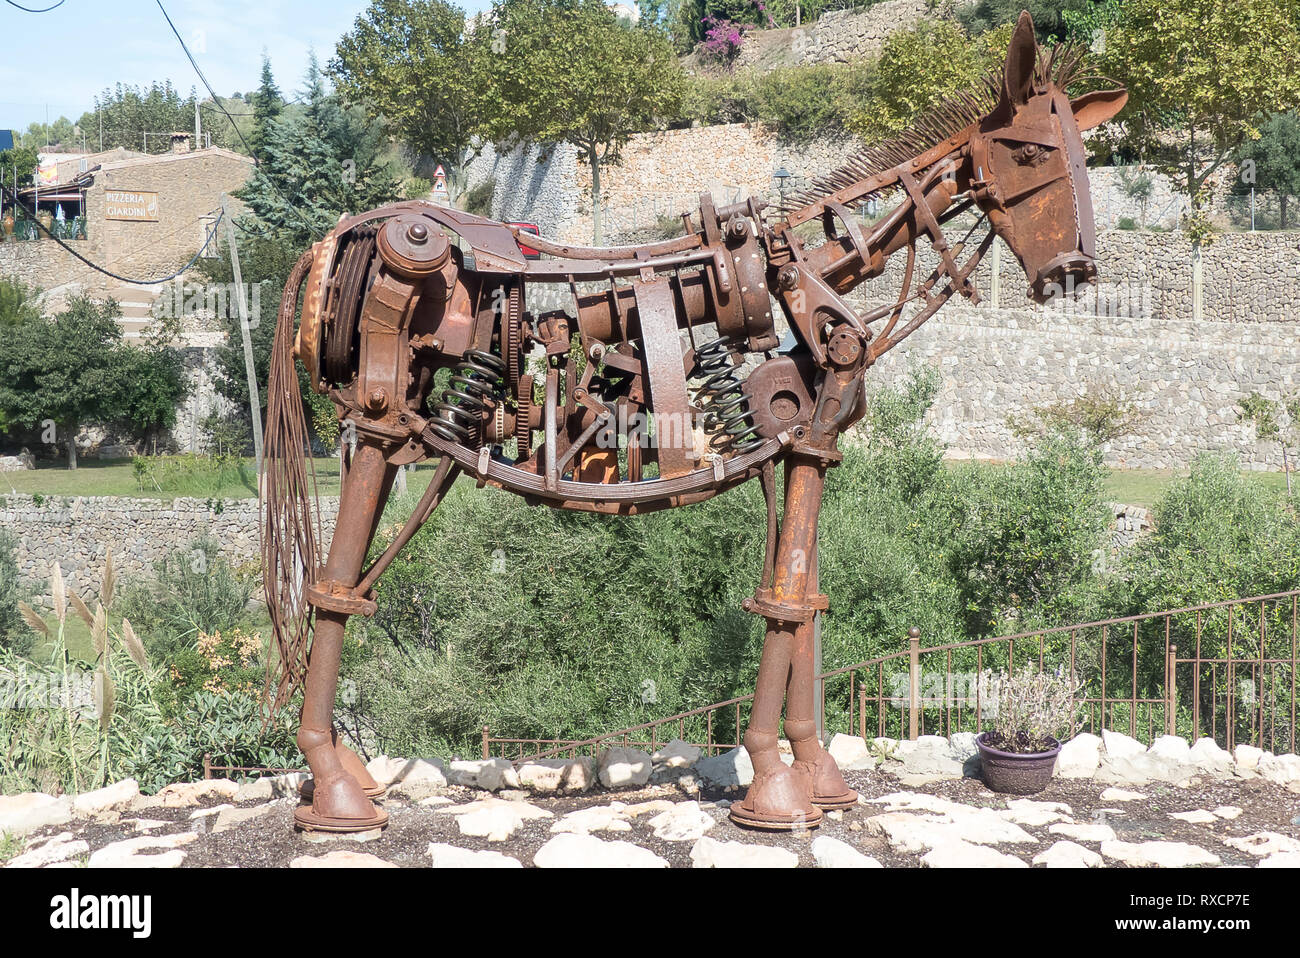 Majorca 2018: a sculpture of a horse made of old car parts, seen in the village of Estellencs. Stock Photo